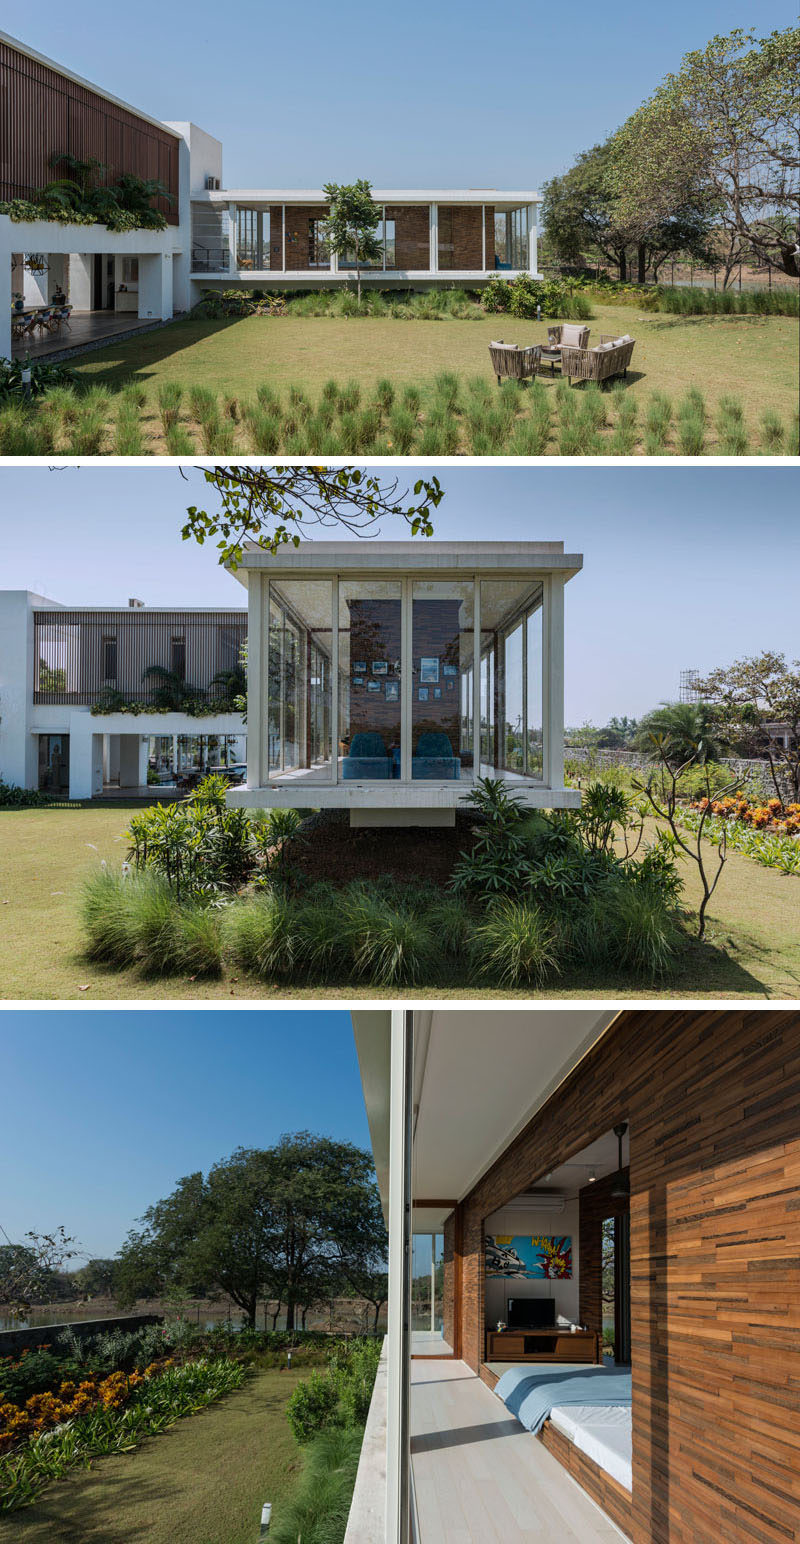 For the children that live in this modern house, there's a special area just for them, a cantilevered room that features a wood box within a glass box. This cantilevered space has large floor-to-ceiling windows that look out onto the garden.